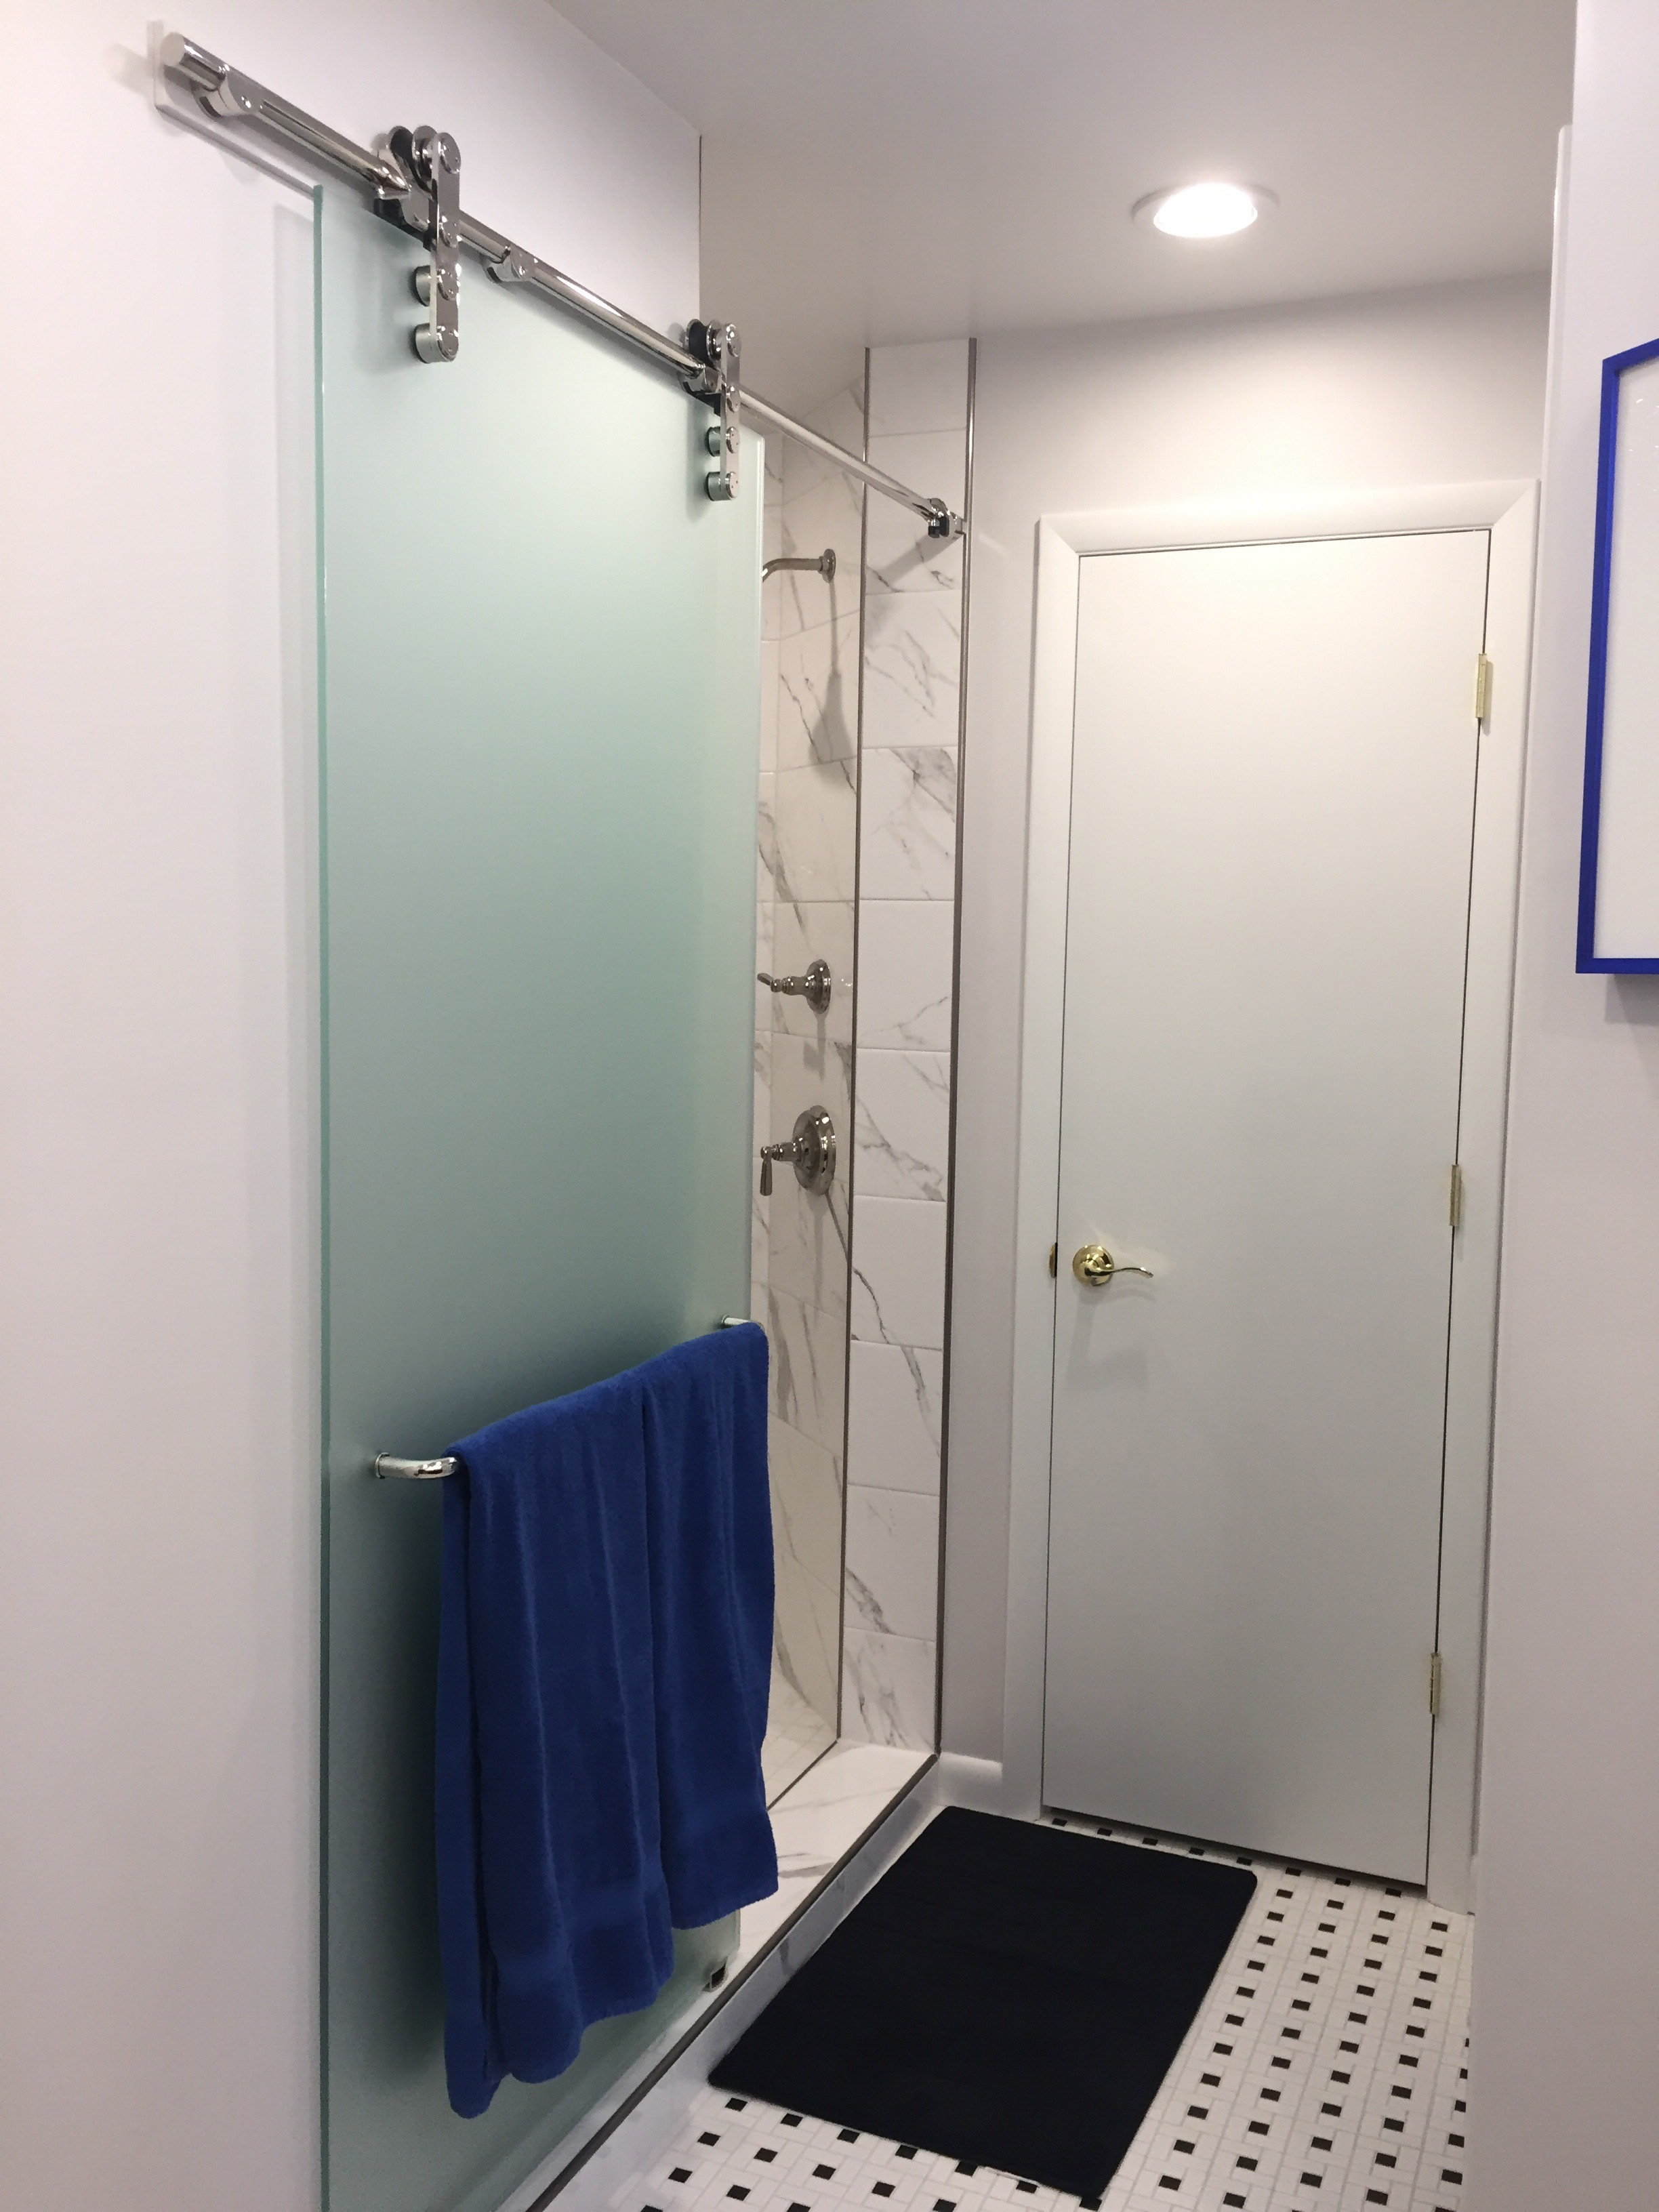 """After, a large shower's door is mounted on contemporary barn door hardware to keep it out of the way. A new linen closet is at the end of the bathroom. The door to the toilet is out of sight, just to the right (opposite the shower). One of the old living room windows is in the toilet's compartment now, for a great view of the private wooded back yard while """"thinking""""."""